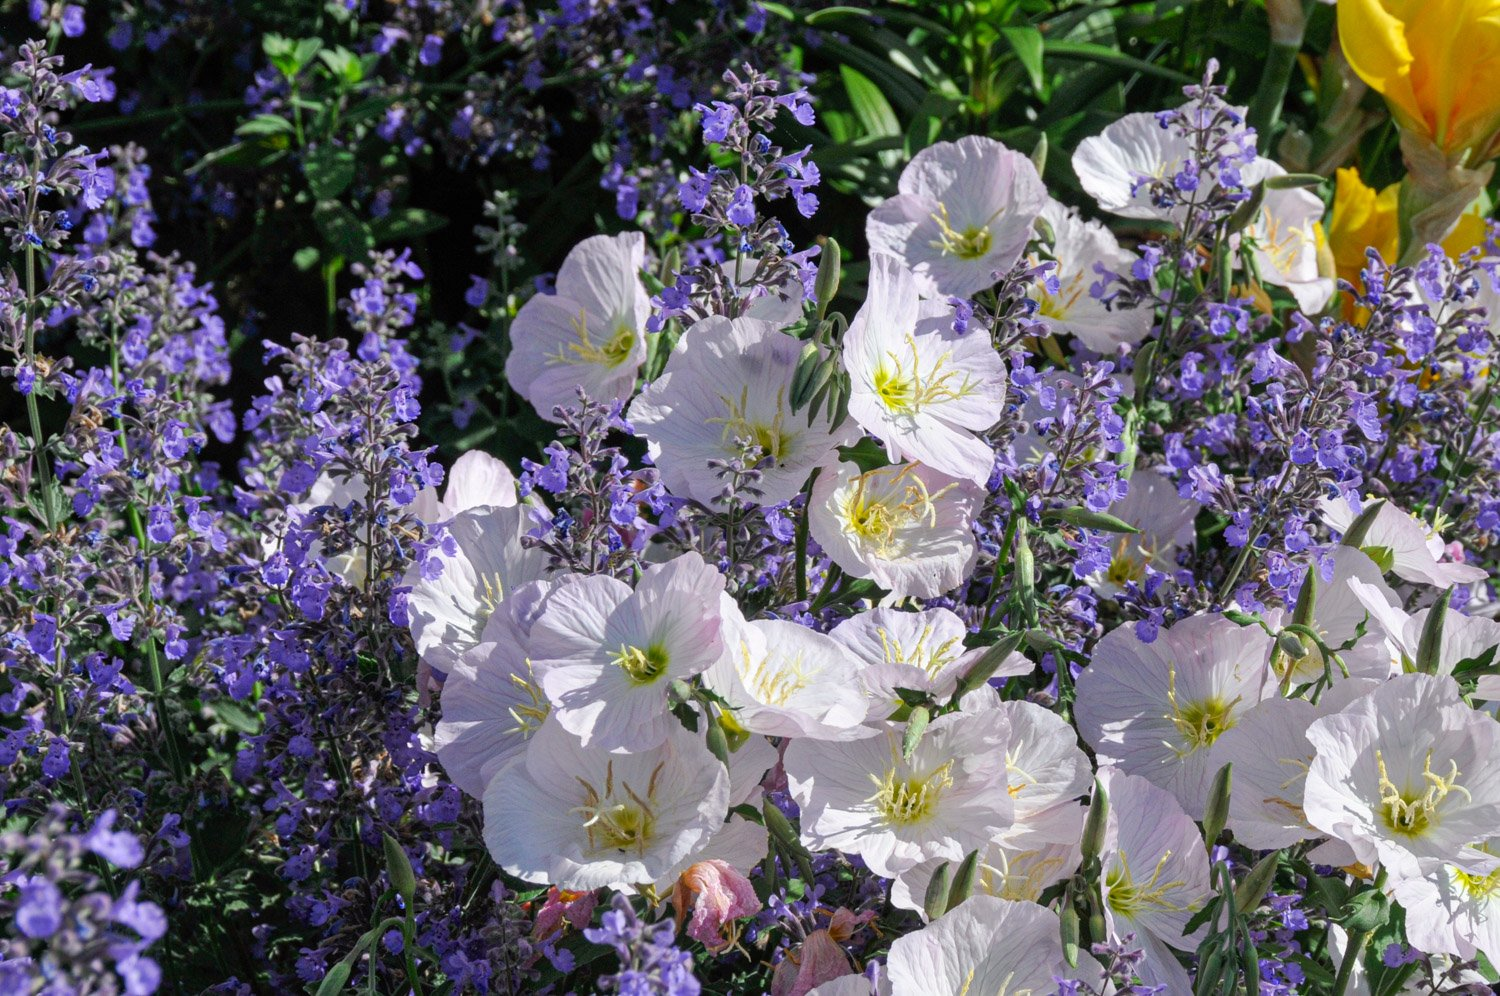 Blooming Pink Evening Primrose entwined with Catmint